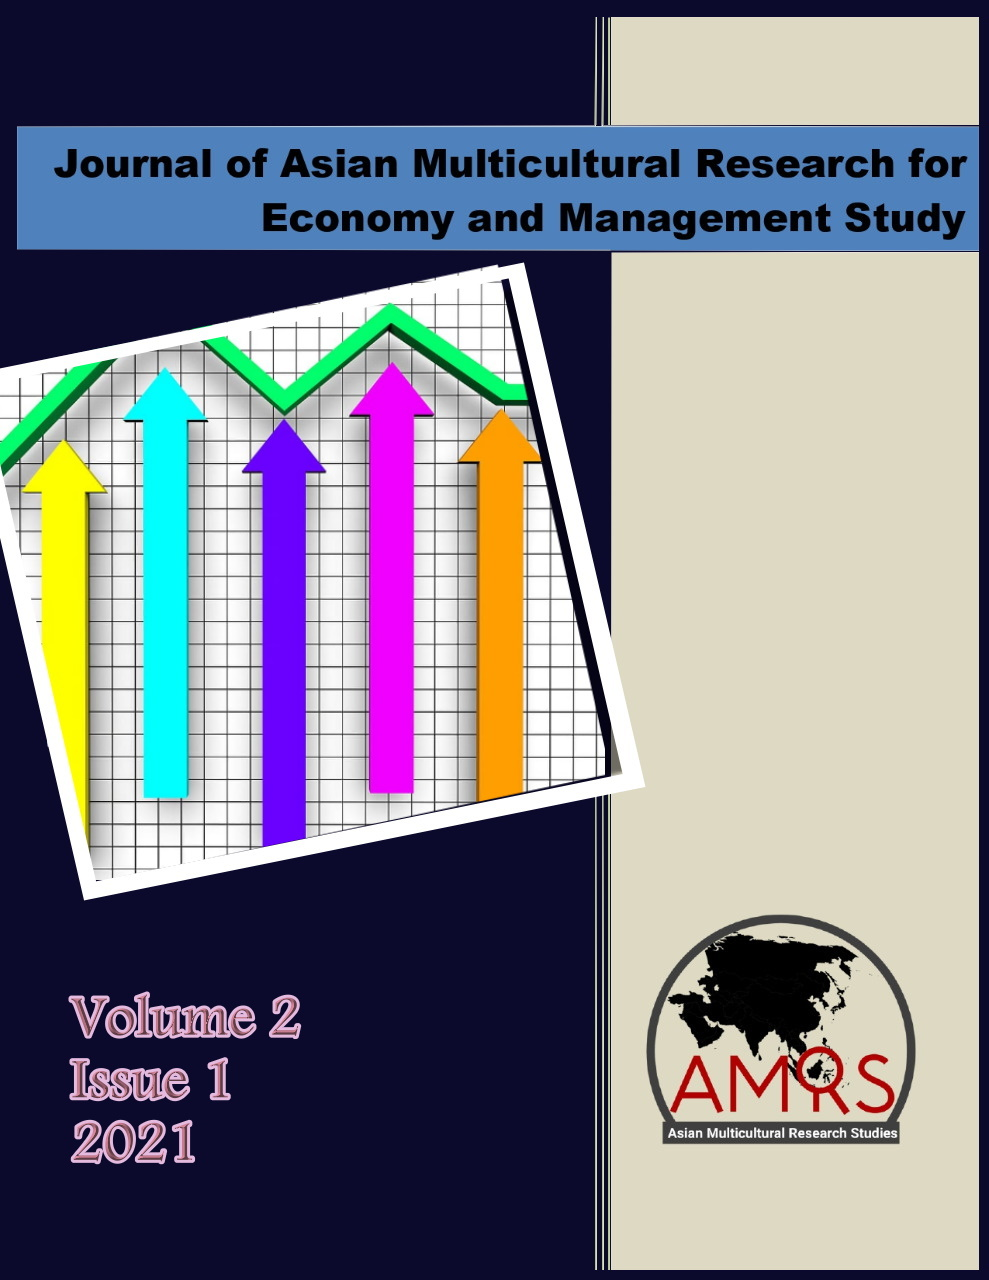 View Vol. 2 No. 1 (2021): Journal of Asian Multicultural Research for Economy and Management Study